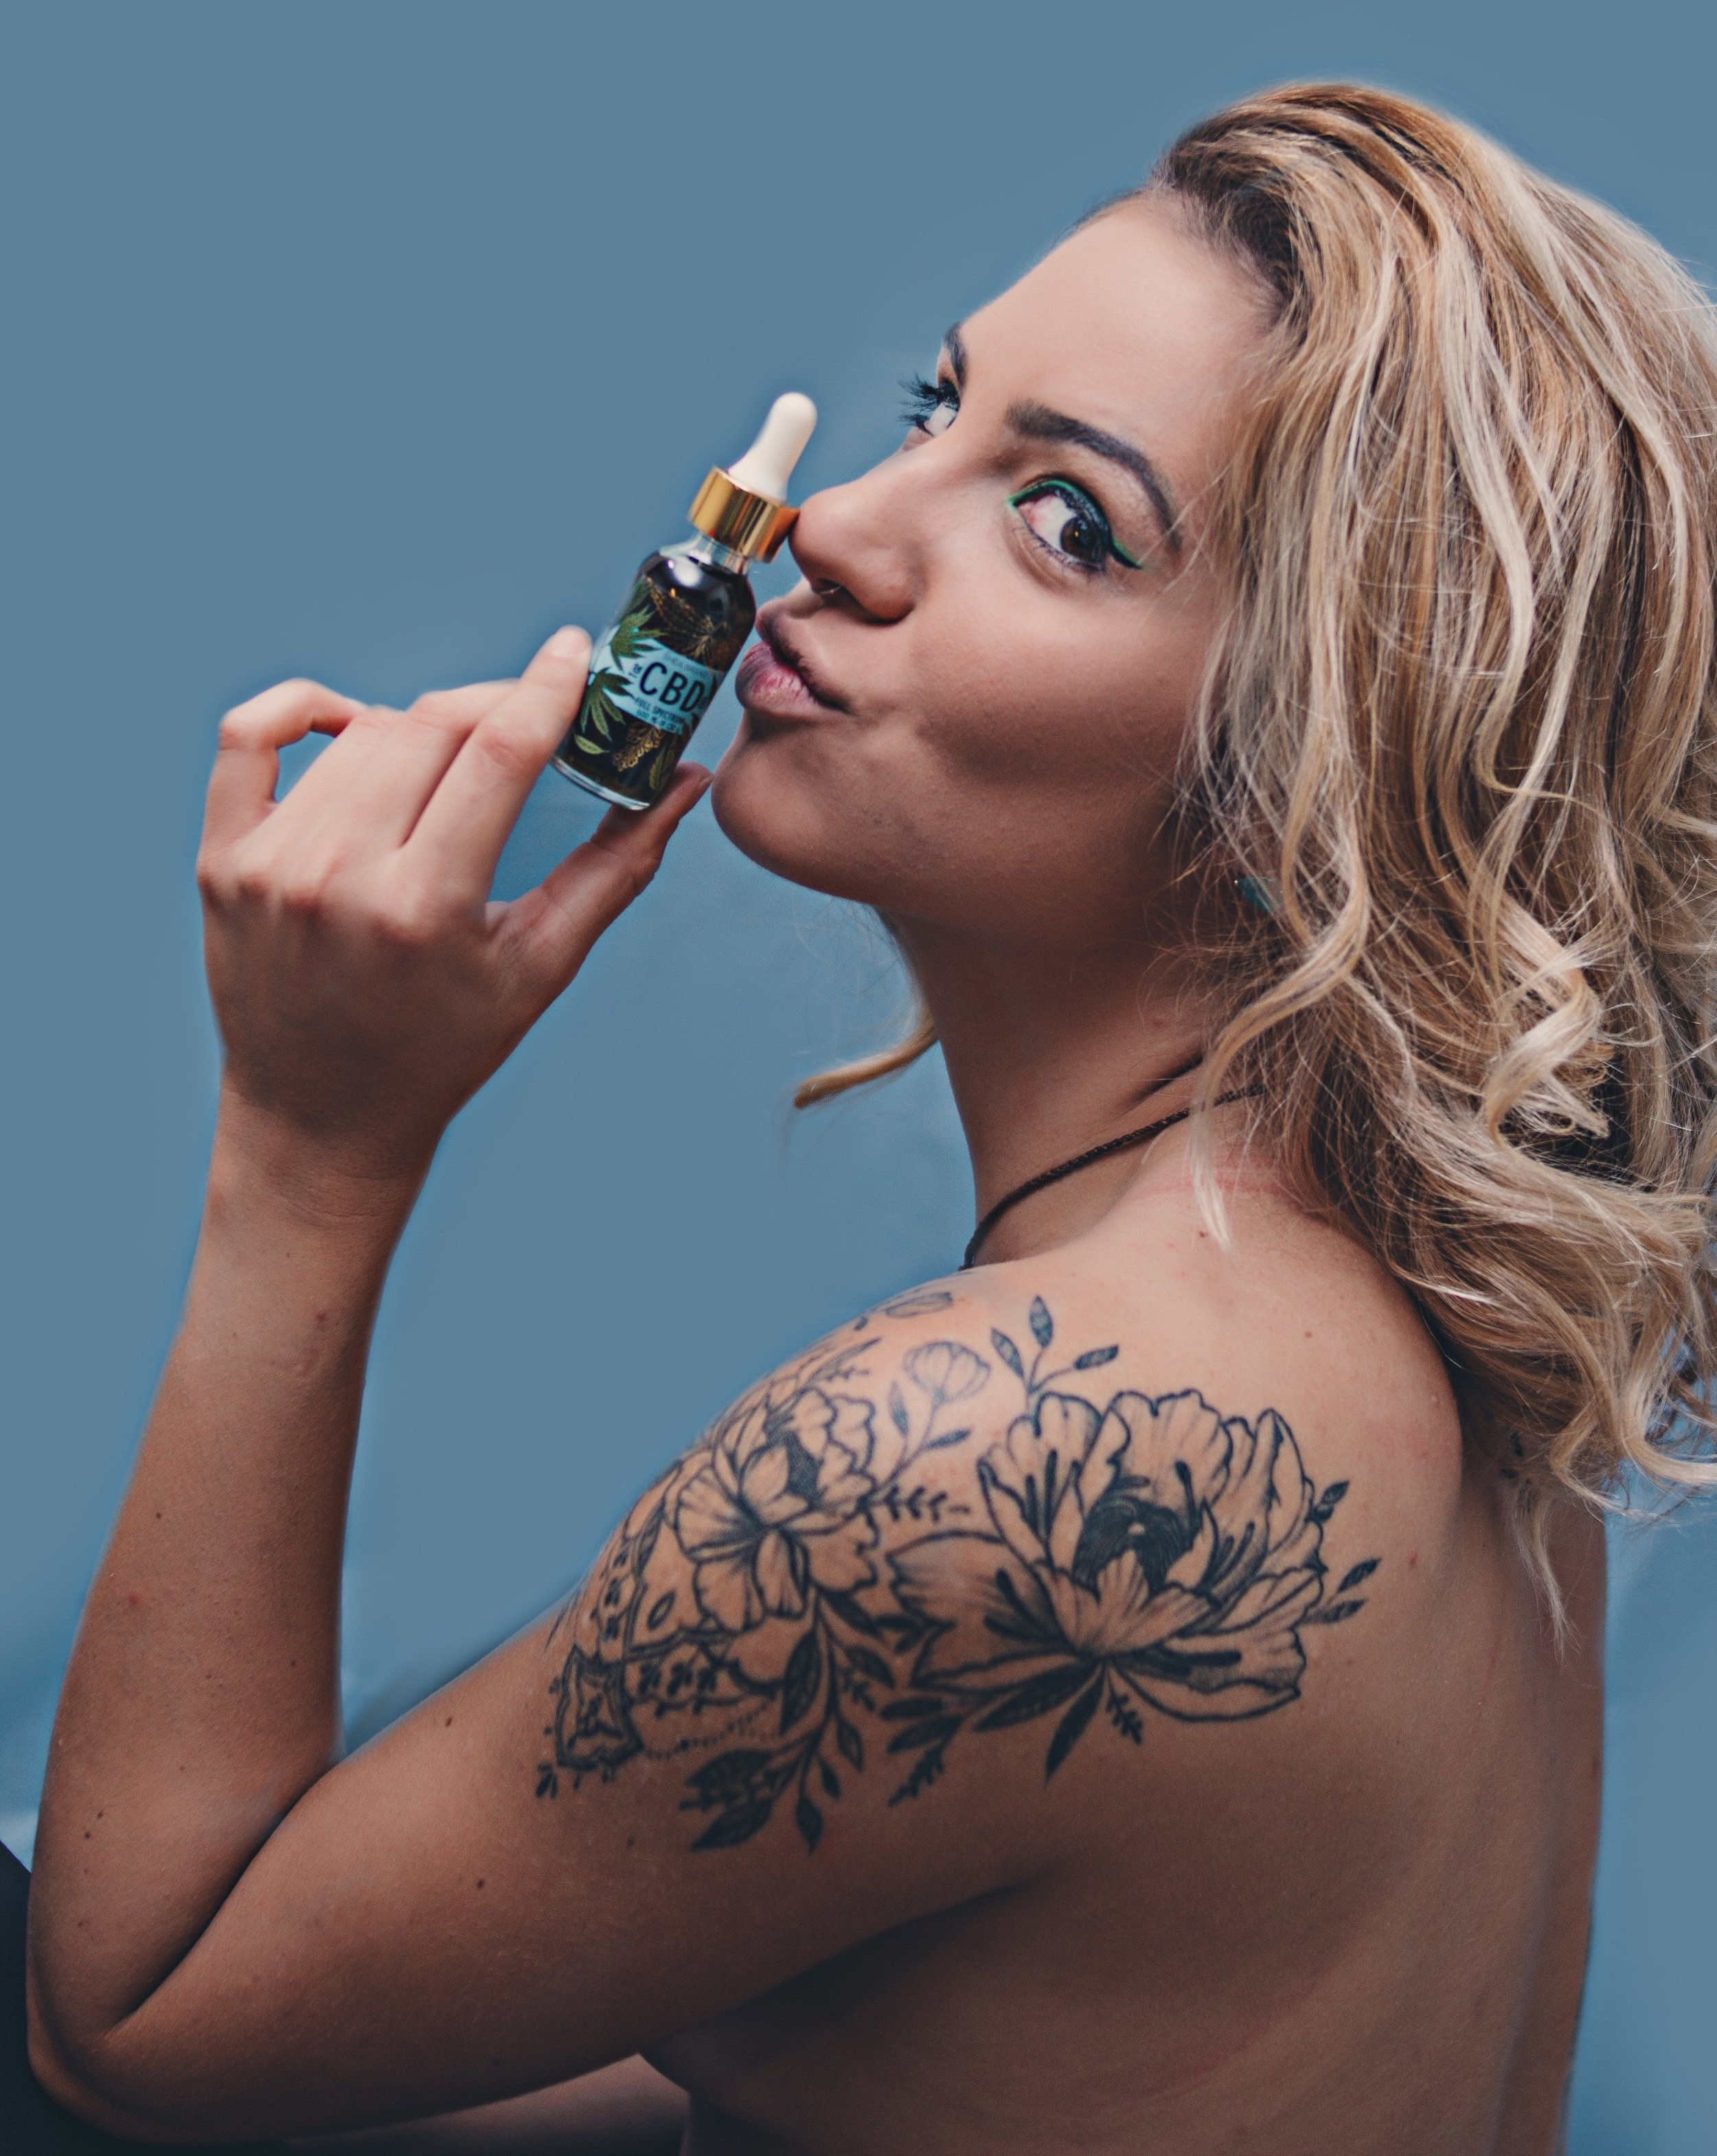 cbd-cbd-photos-cbd-products-1695498.jpg